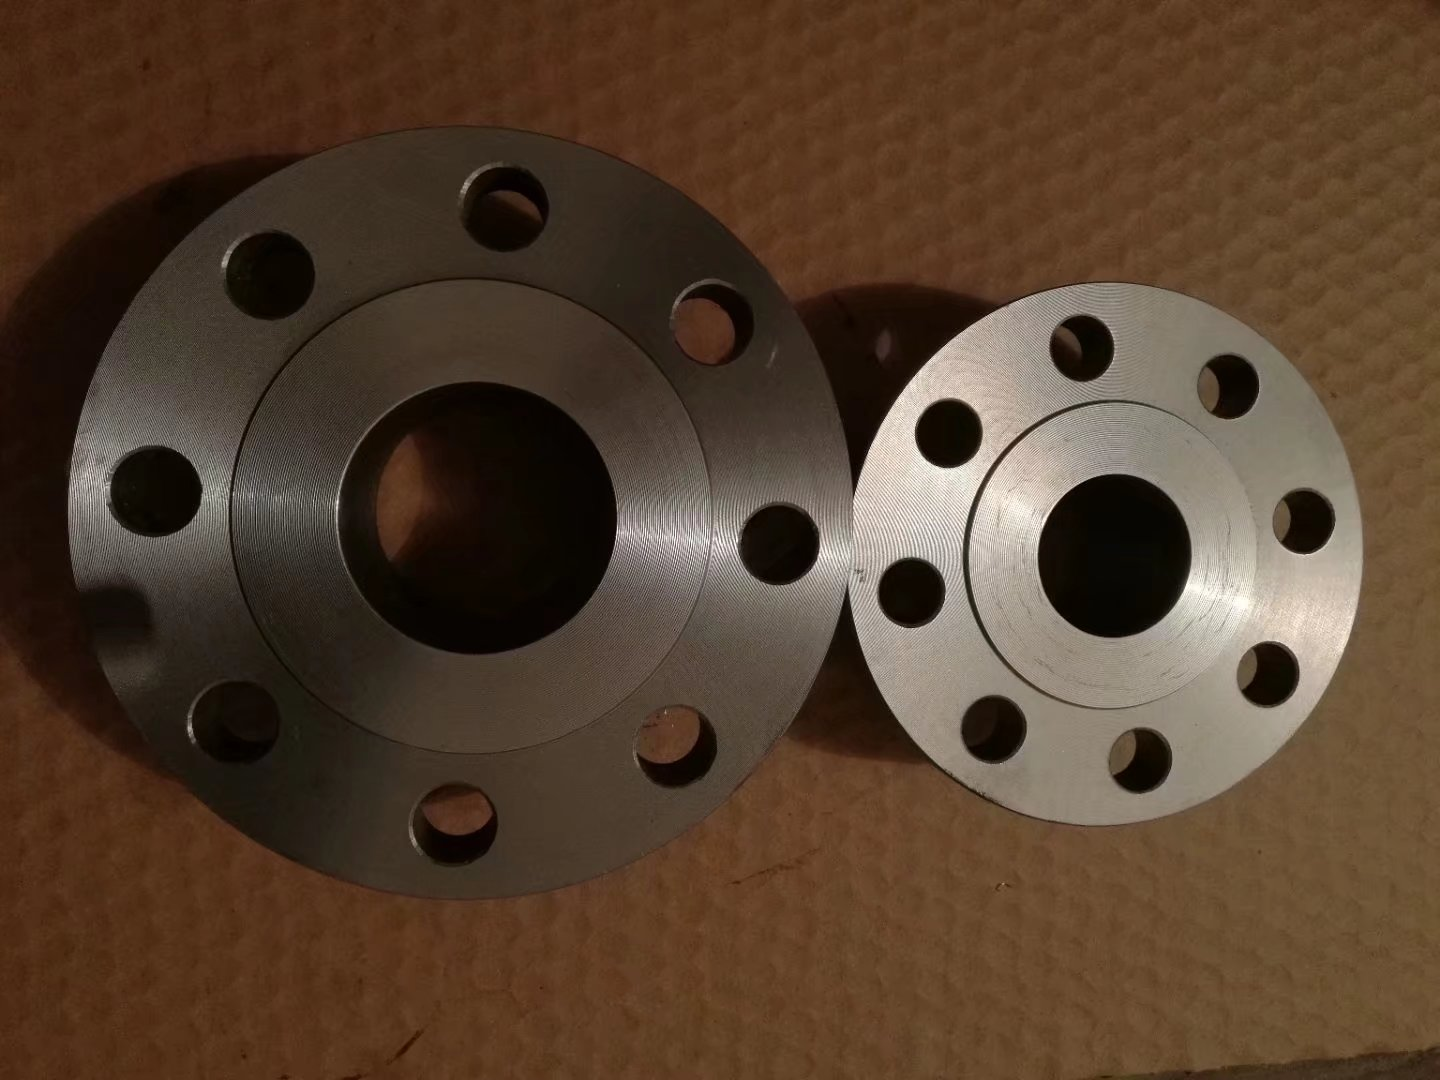 A182 F9 & NACE MR0103 flanges to Korea | Butt welding pipe fittings